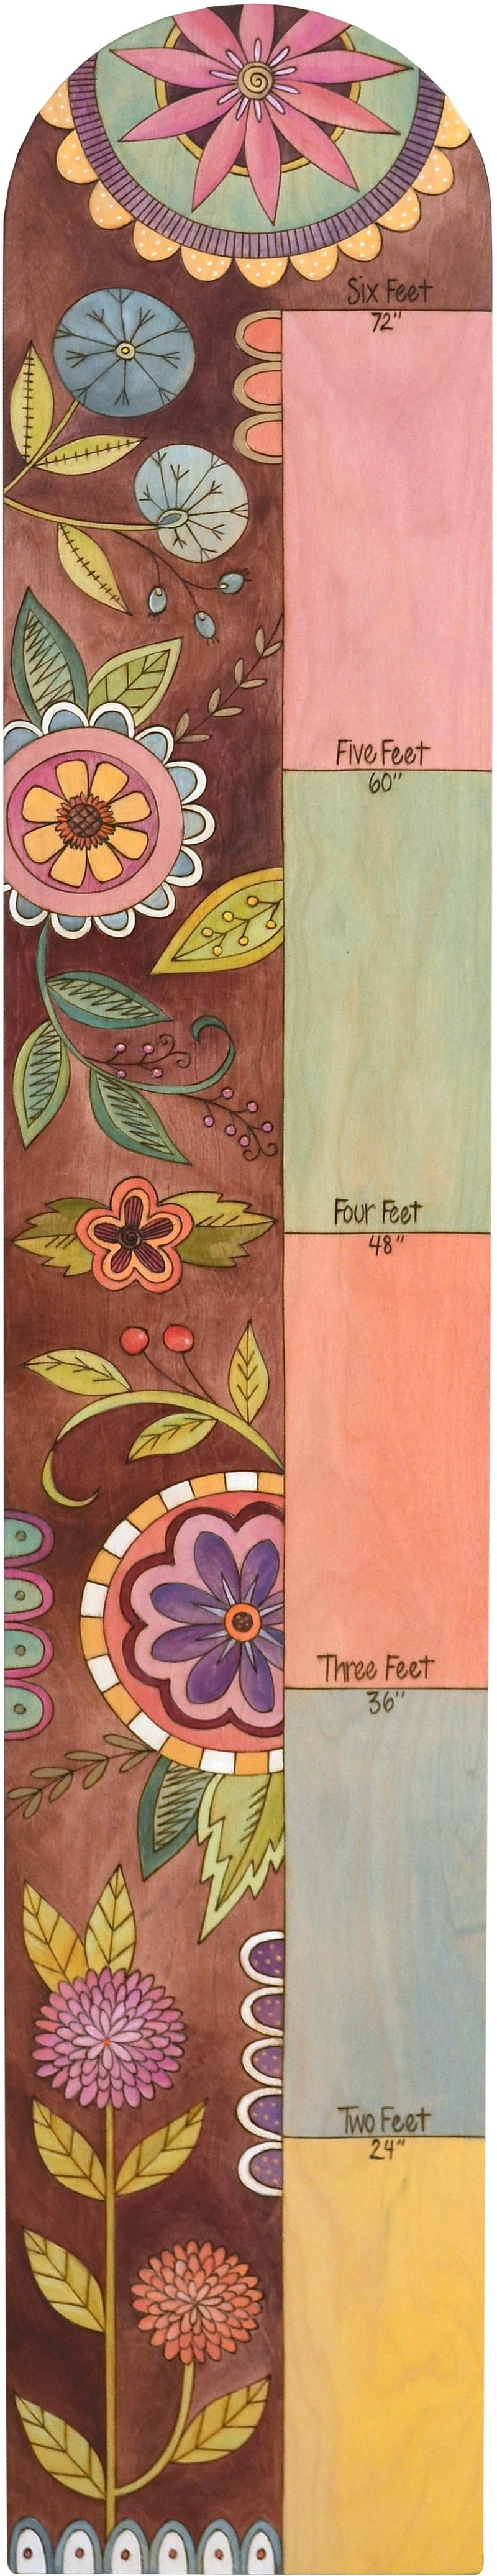 Everlasting Growth Chart –  Pretty pastel growth chart with floral motifs